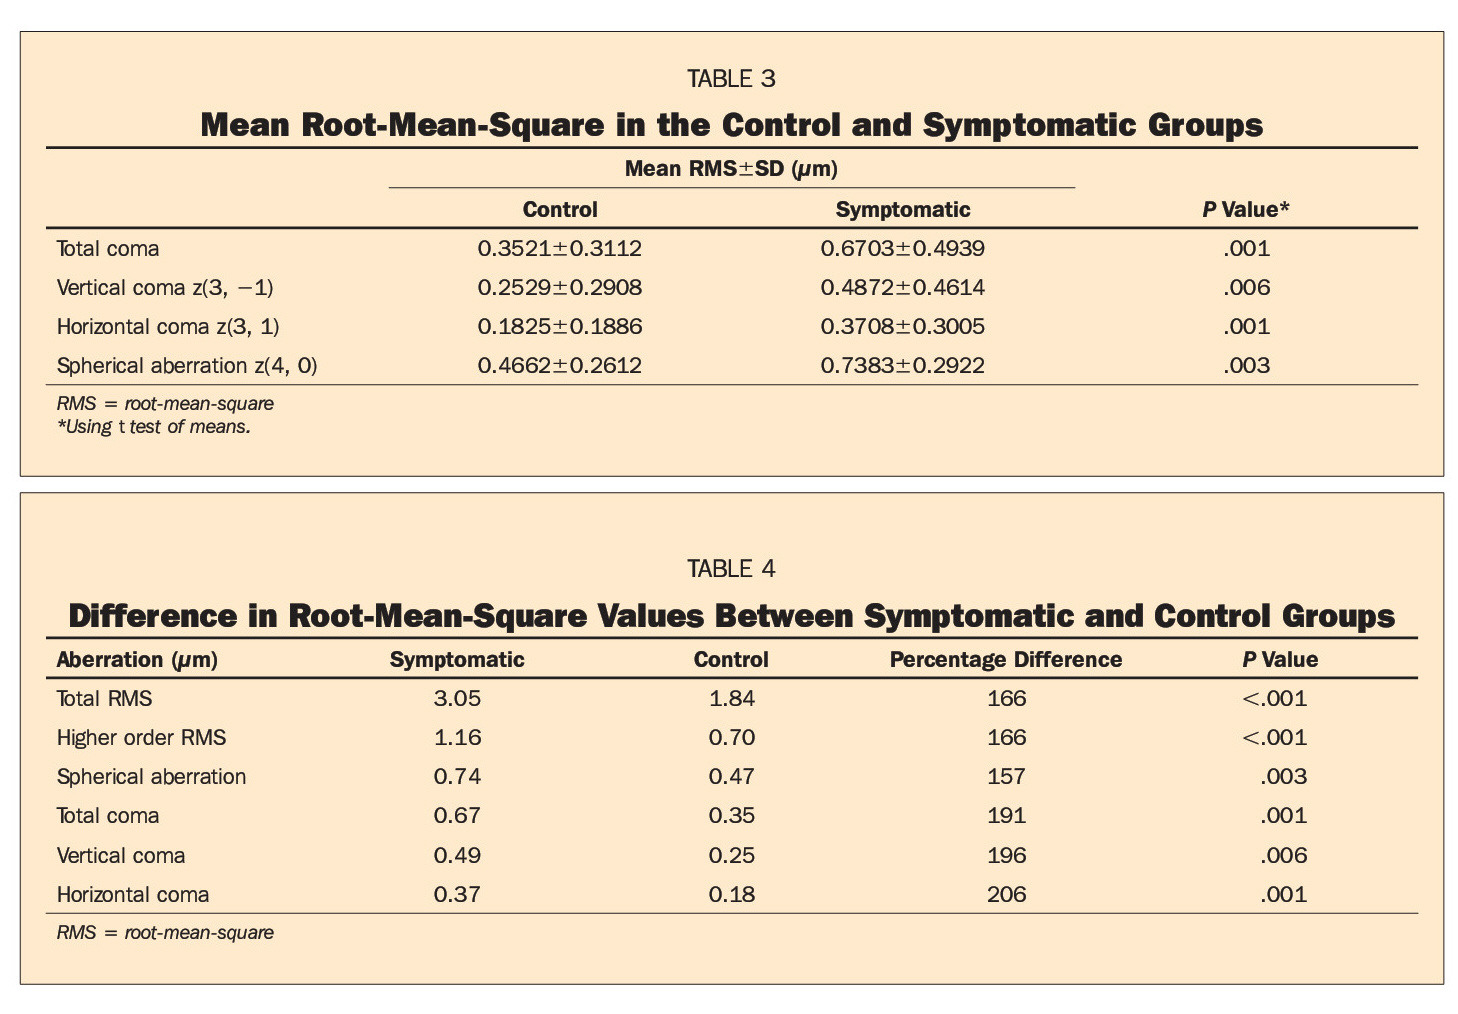 TABLE 3Mean Root-Mean-Square in the Control and Symptomatic GroupsTABLE 4Difference in Root-Mean-Square Values Between Symptomatic and Control Groups